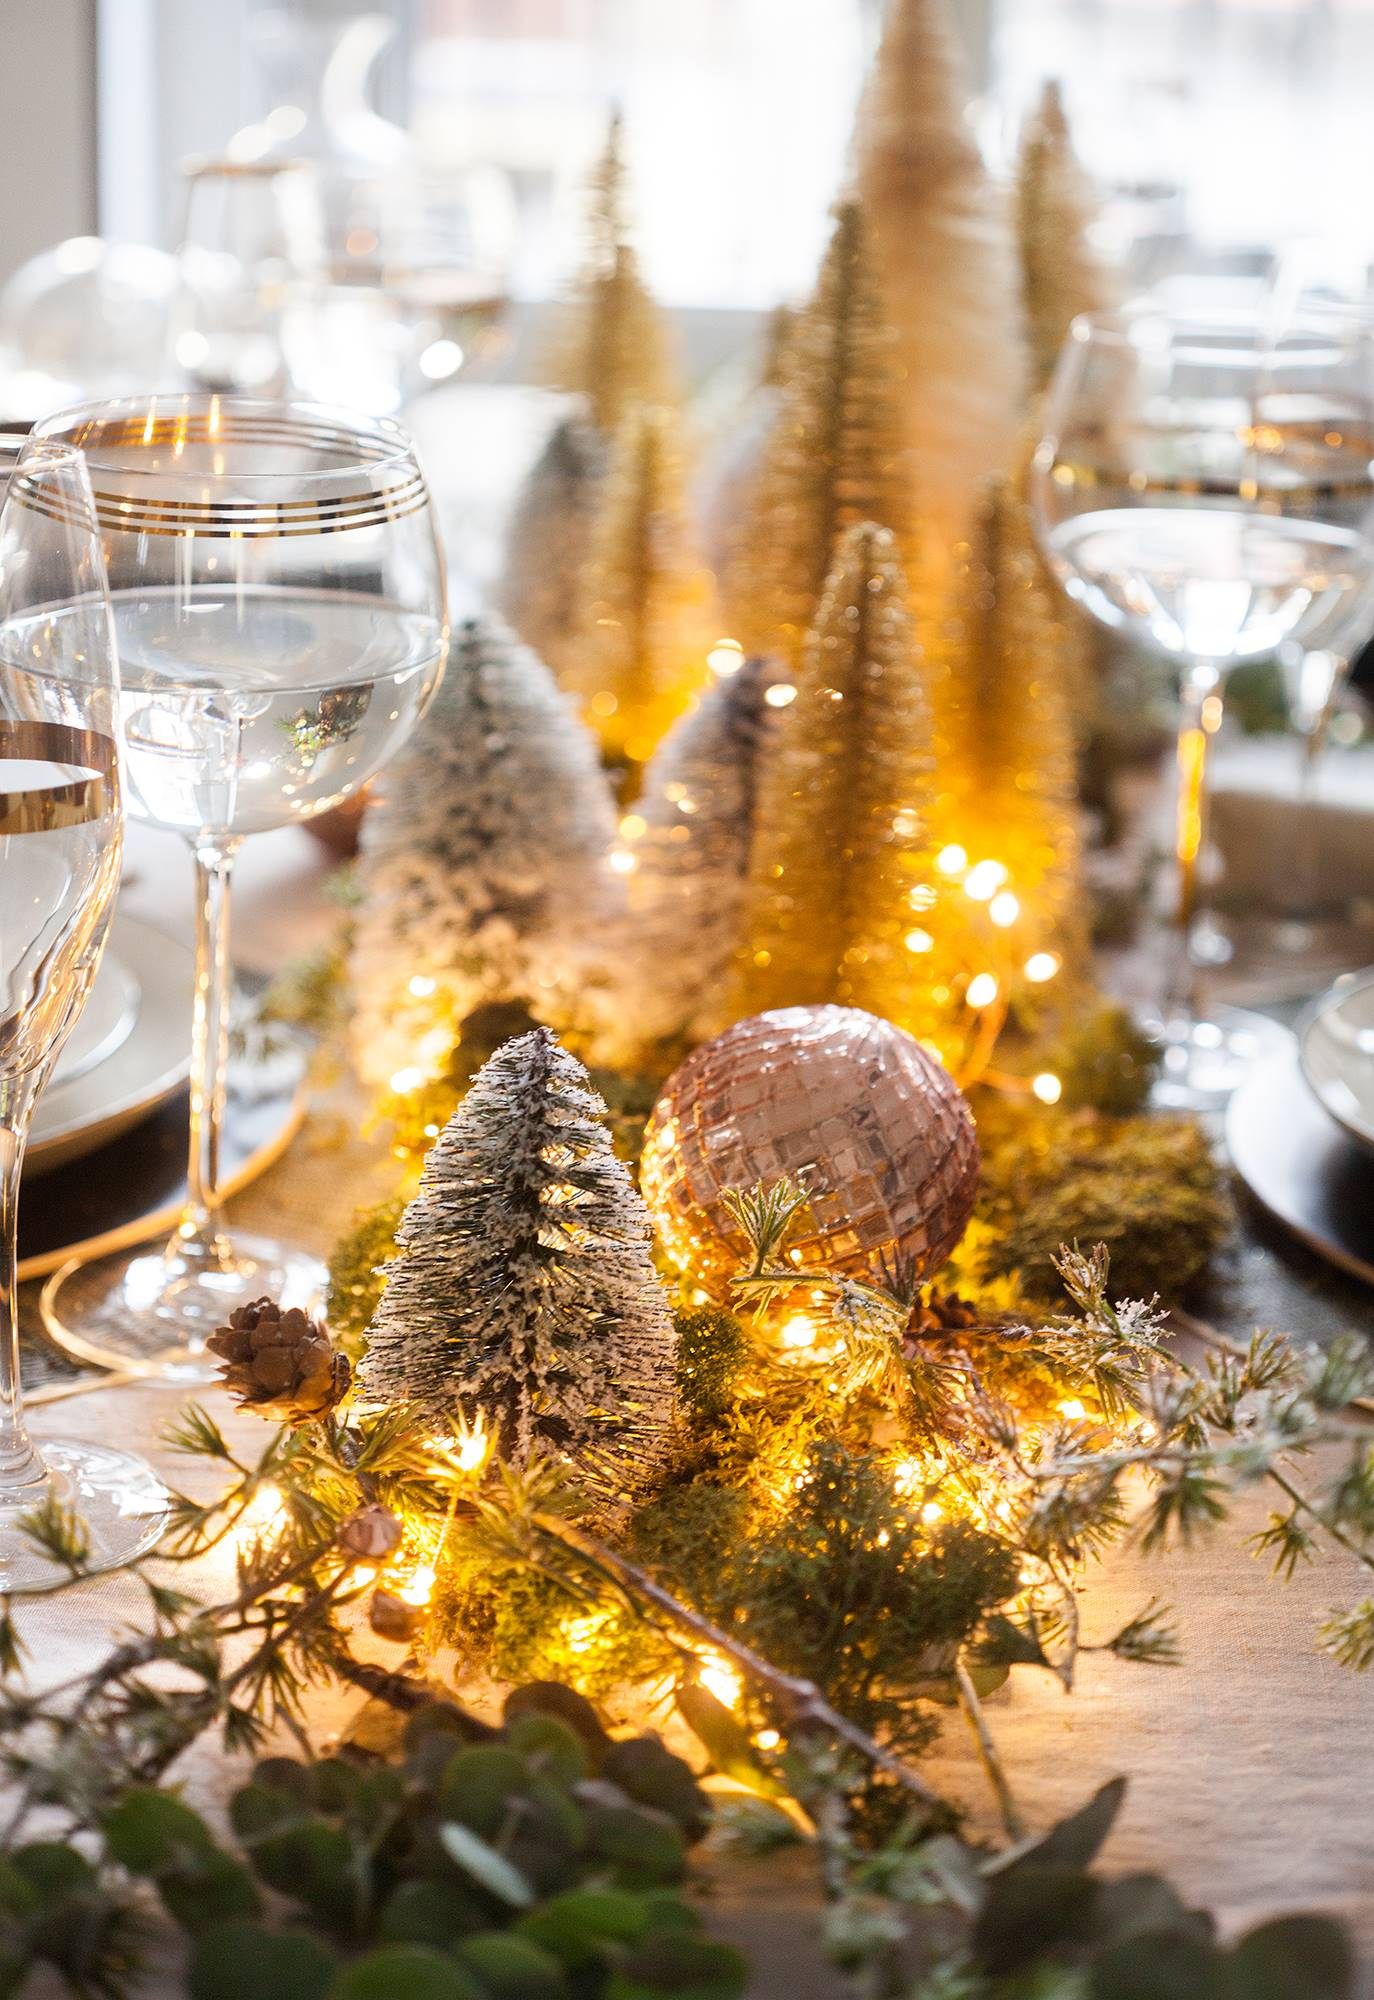 00471004 o 62aaad0f 1374x2000 - Tips to decorate the table at Christmas